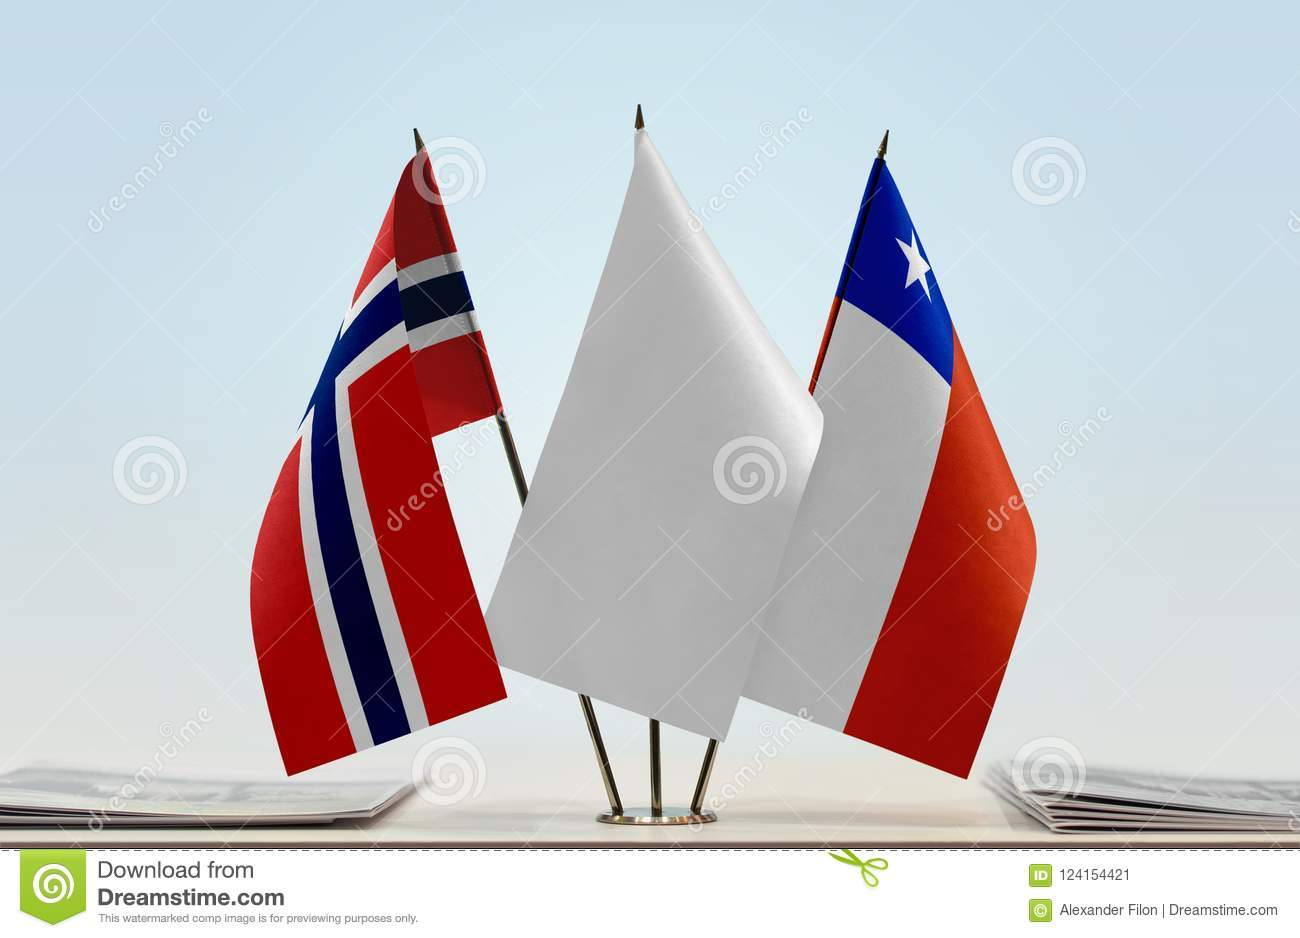 Flags of Norway and Chile